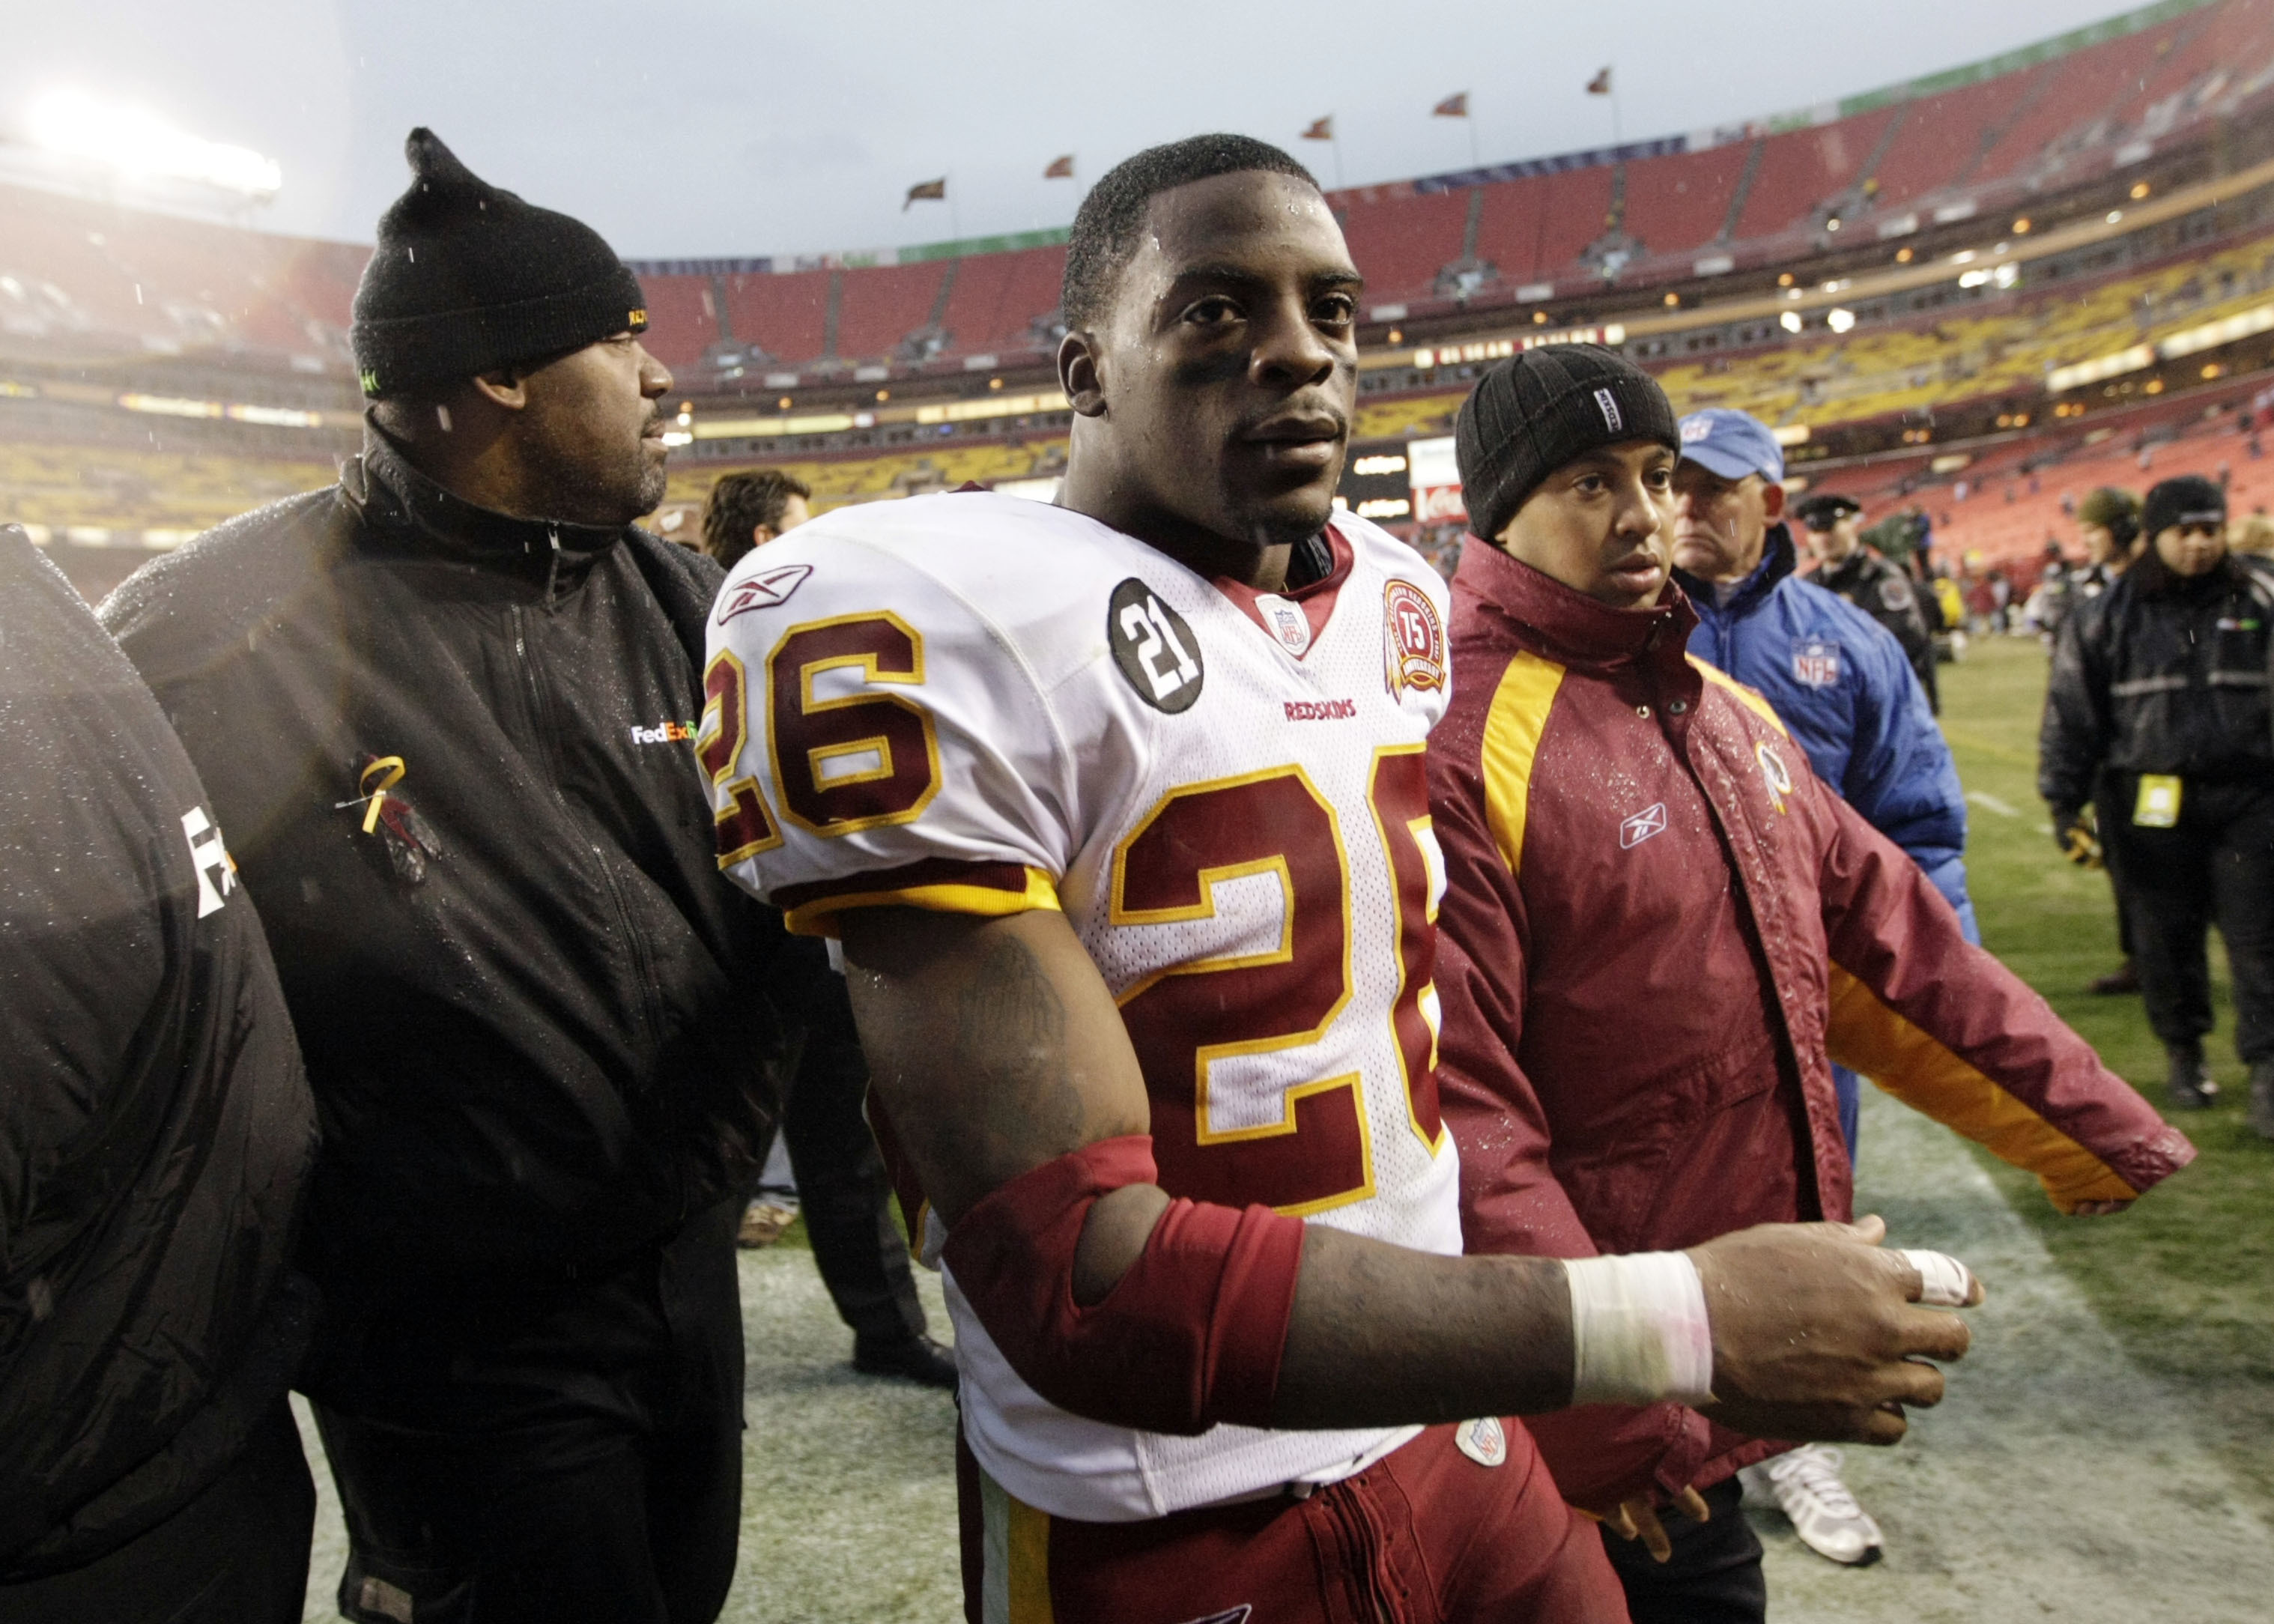 Clinton Portis, shown after a 2007 game, is one of 10 former NFL players charged with defrauding a healthcare program.